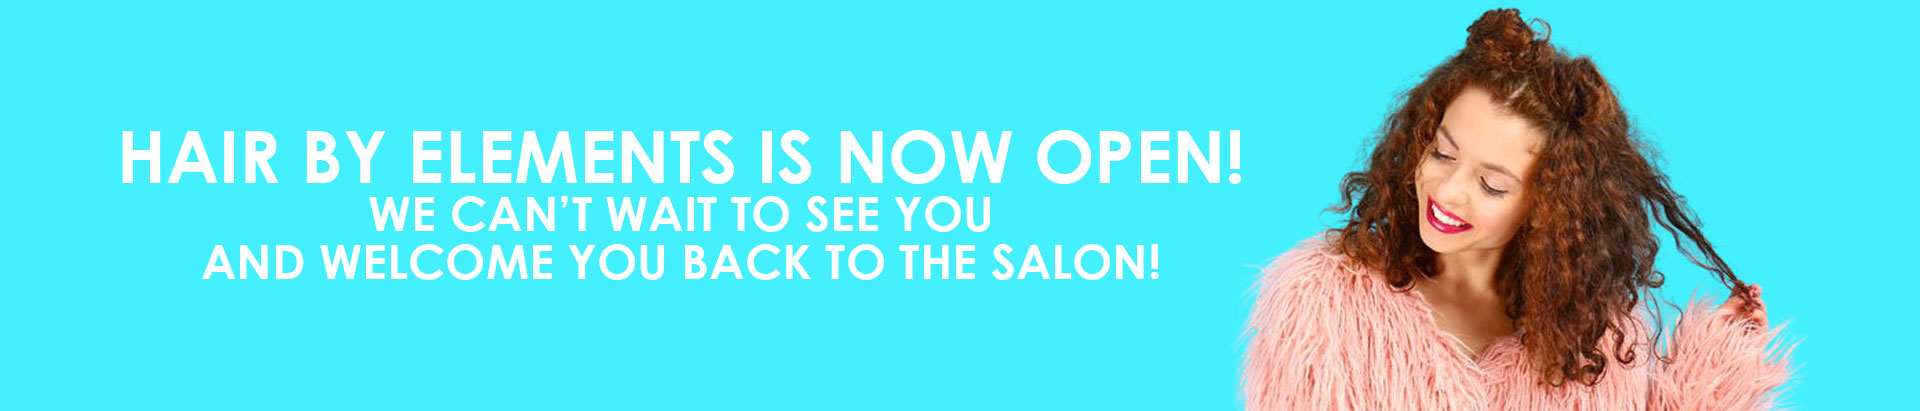 Hair by Elements is now open We can't wait to see you and welcome you back to the salon